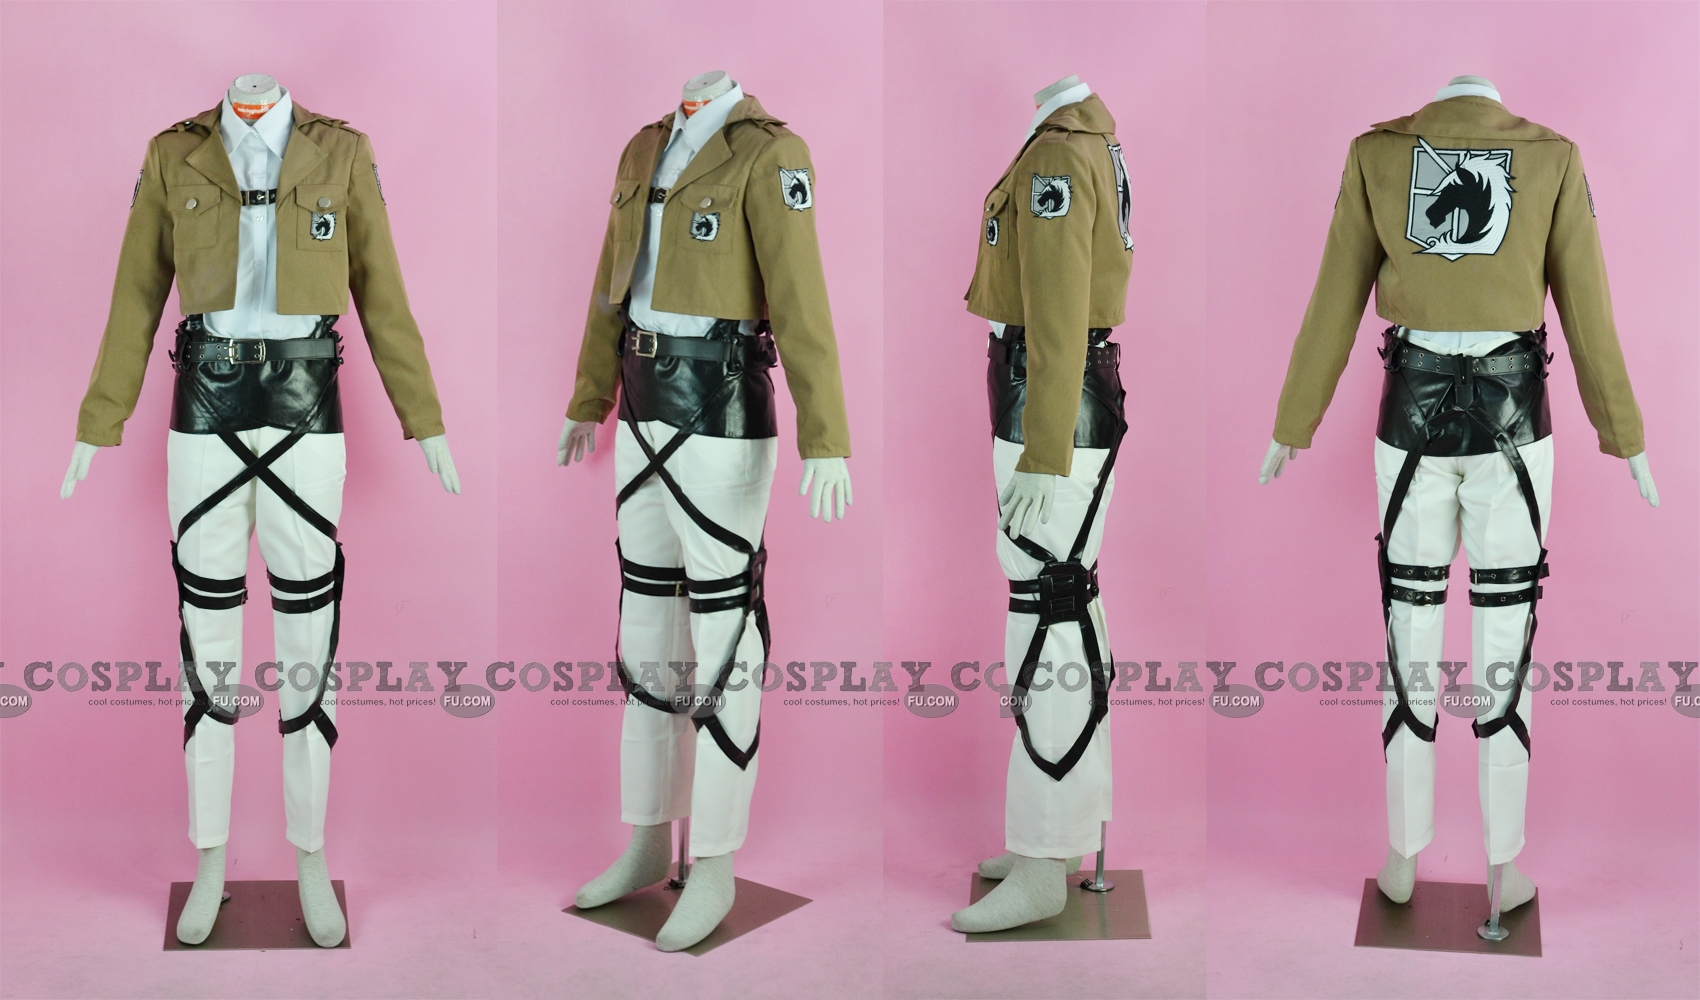 Nile Cosplay Costume (Military Police Brigade) from Attack On Titan